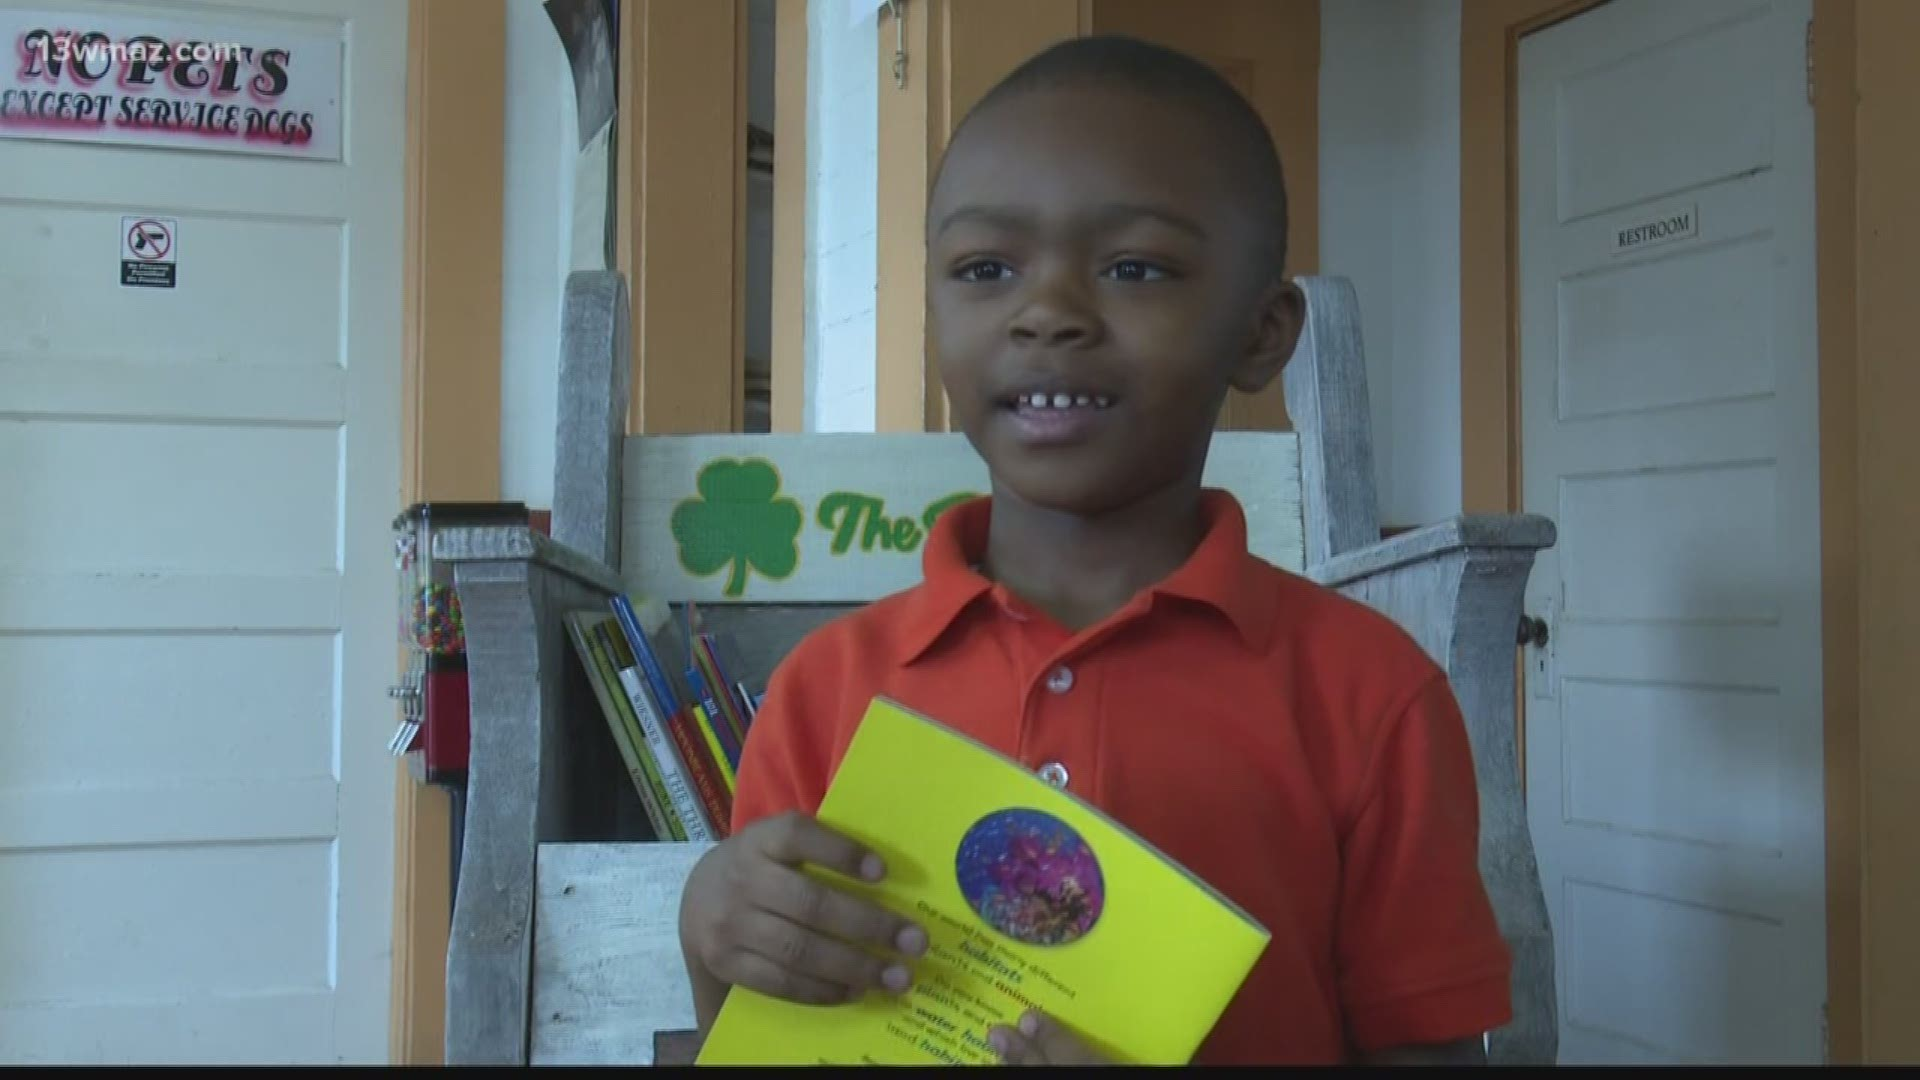 Books Barbers And Beauty Dublin City Schools Hopes To Get More Kids Reading While Getting Their Hair Done Cbs8 Com